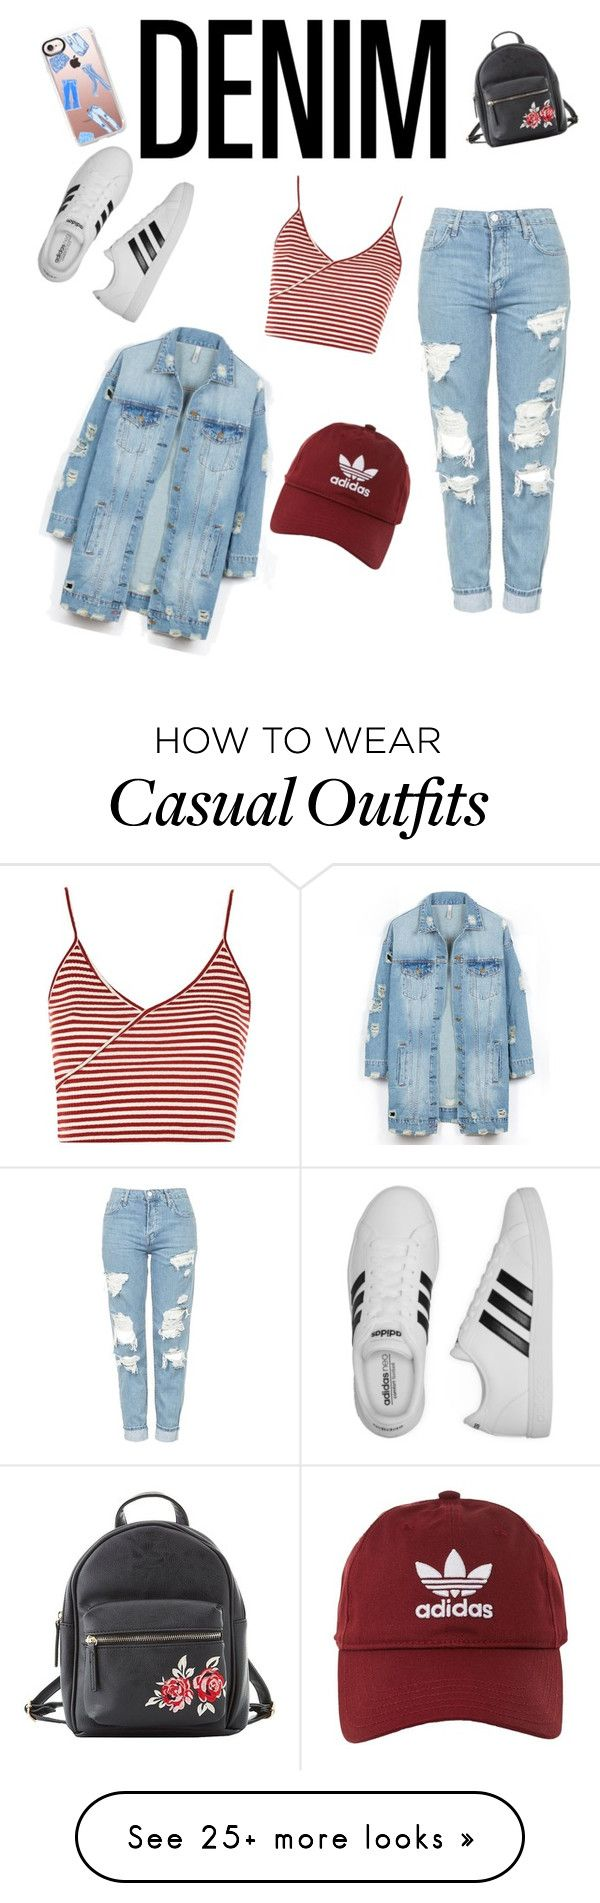 """""""denim casual"""" by luula5 on Polyvore featuring Topshop, adidas, LE3NO, Casetify and Charlotte Russe"""